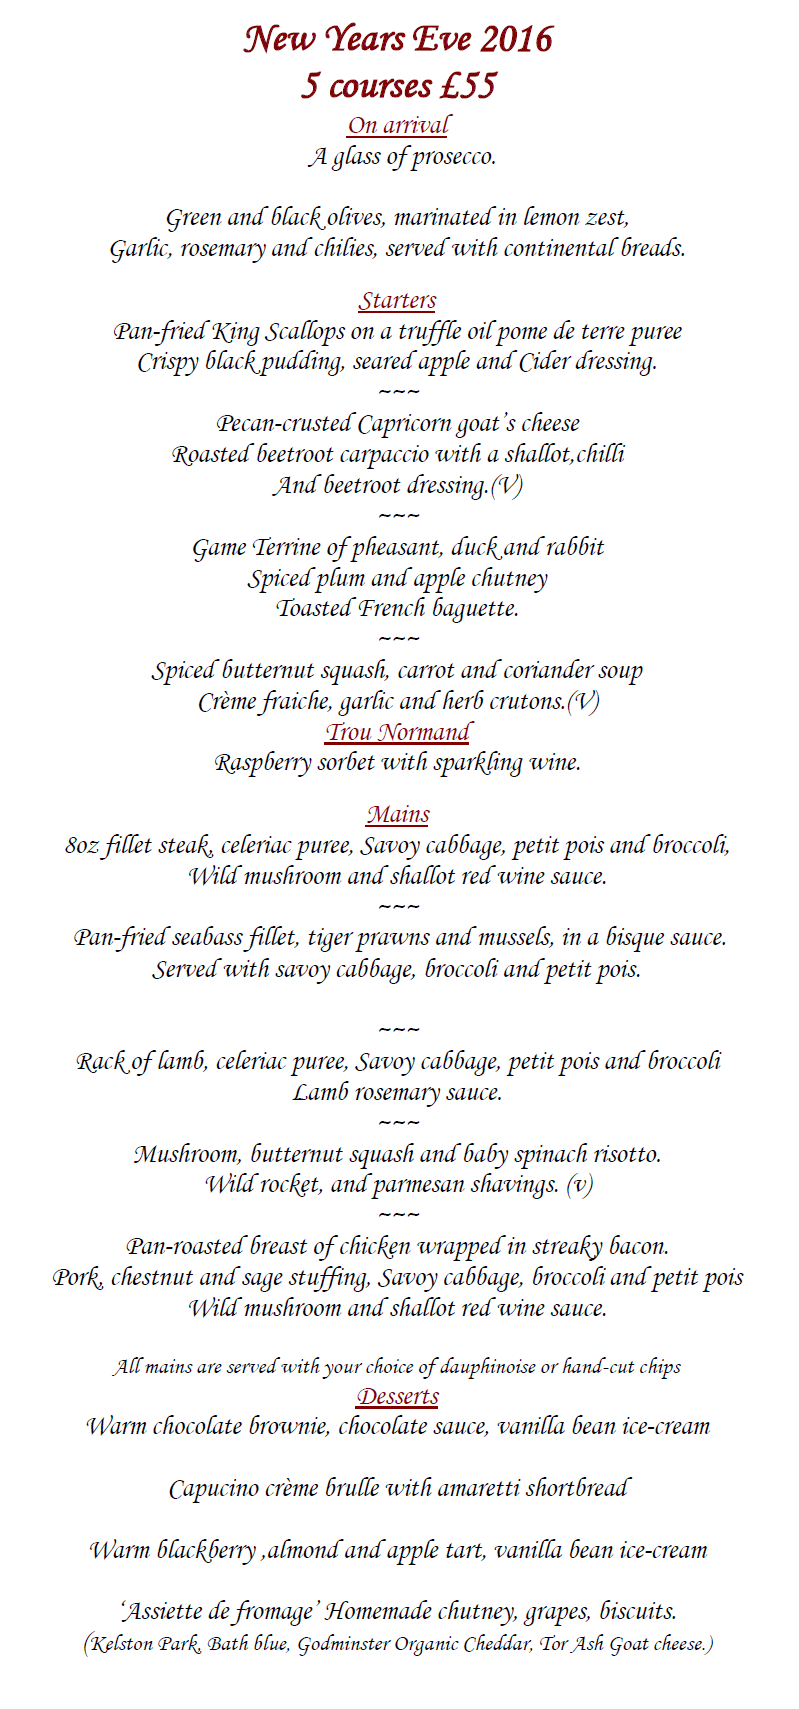 Raphael Restaurant New Years Eve Menu